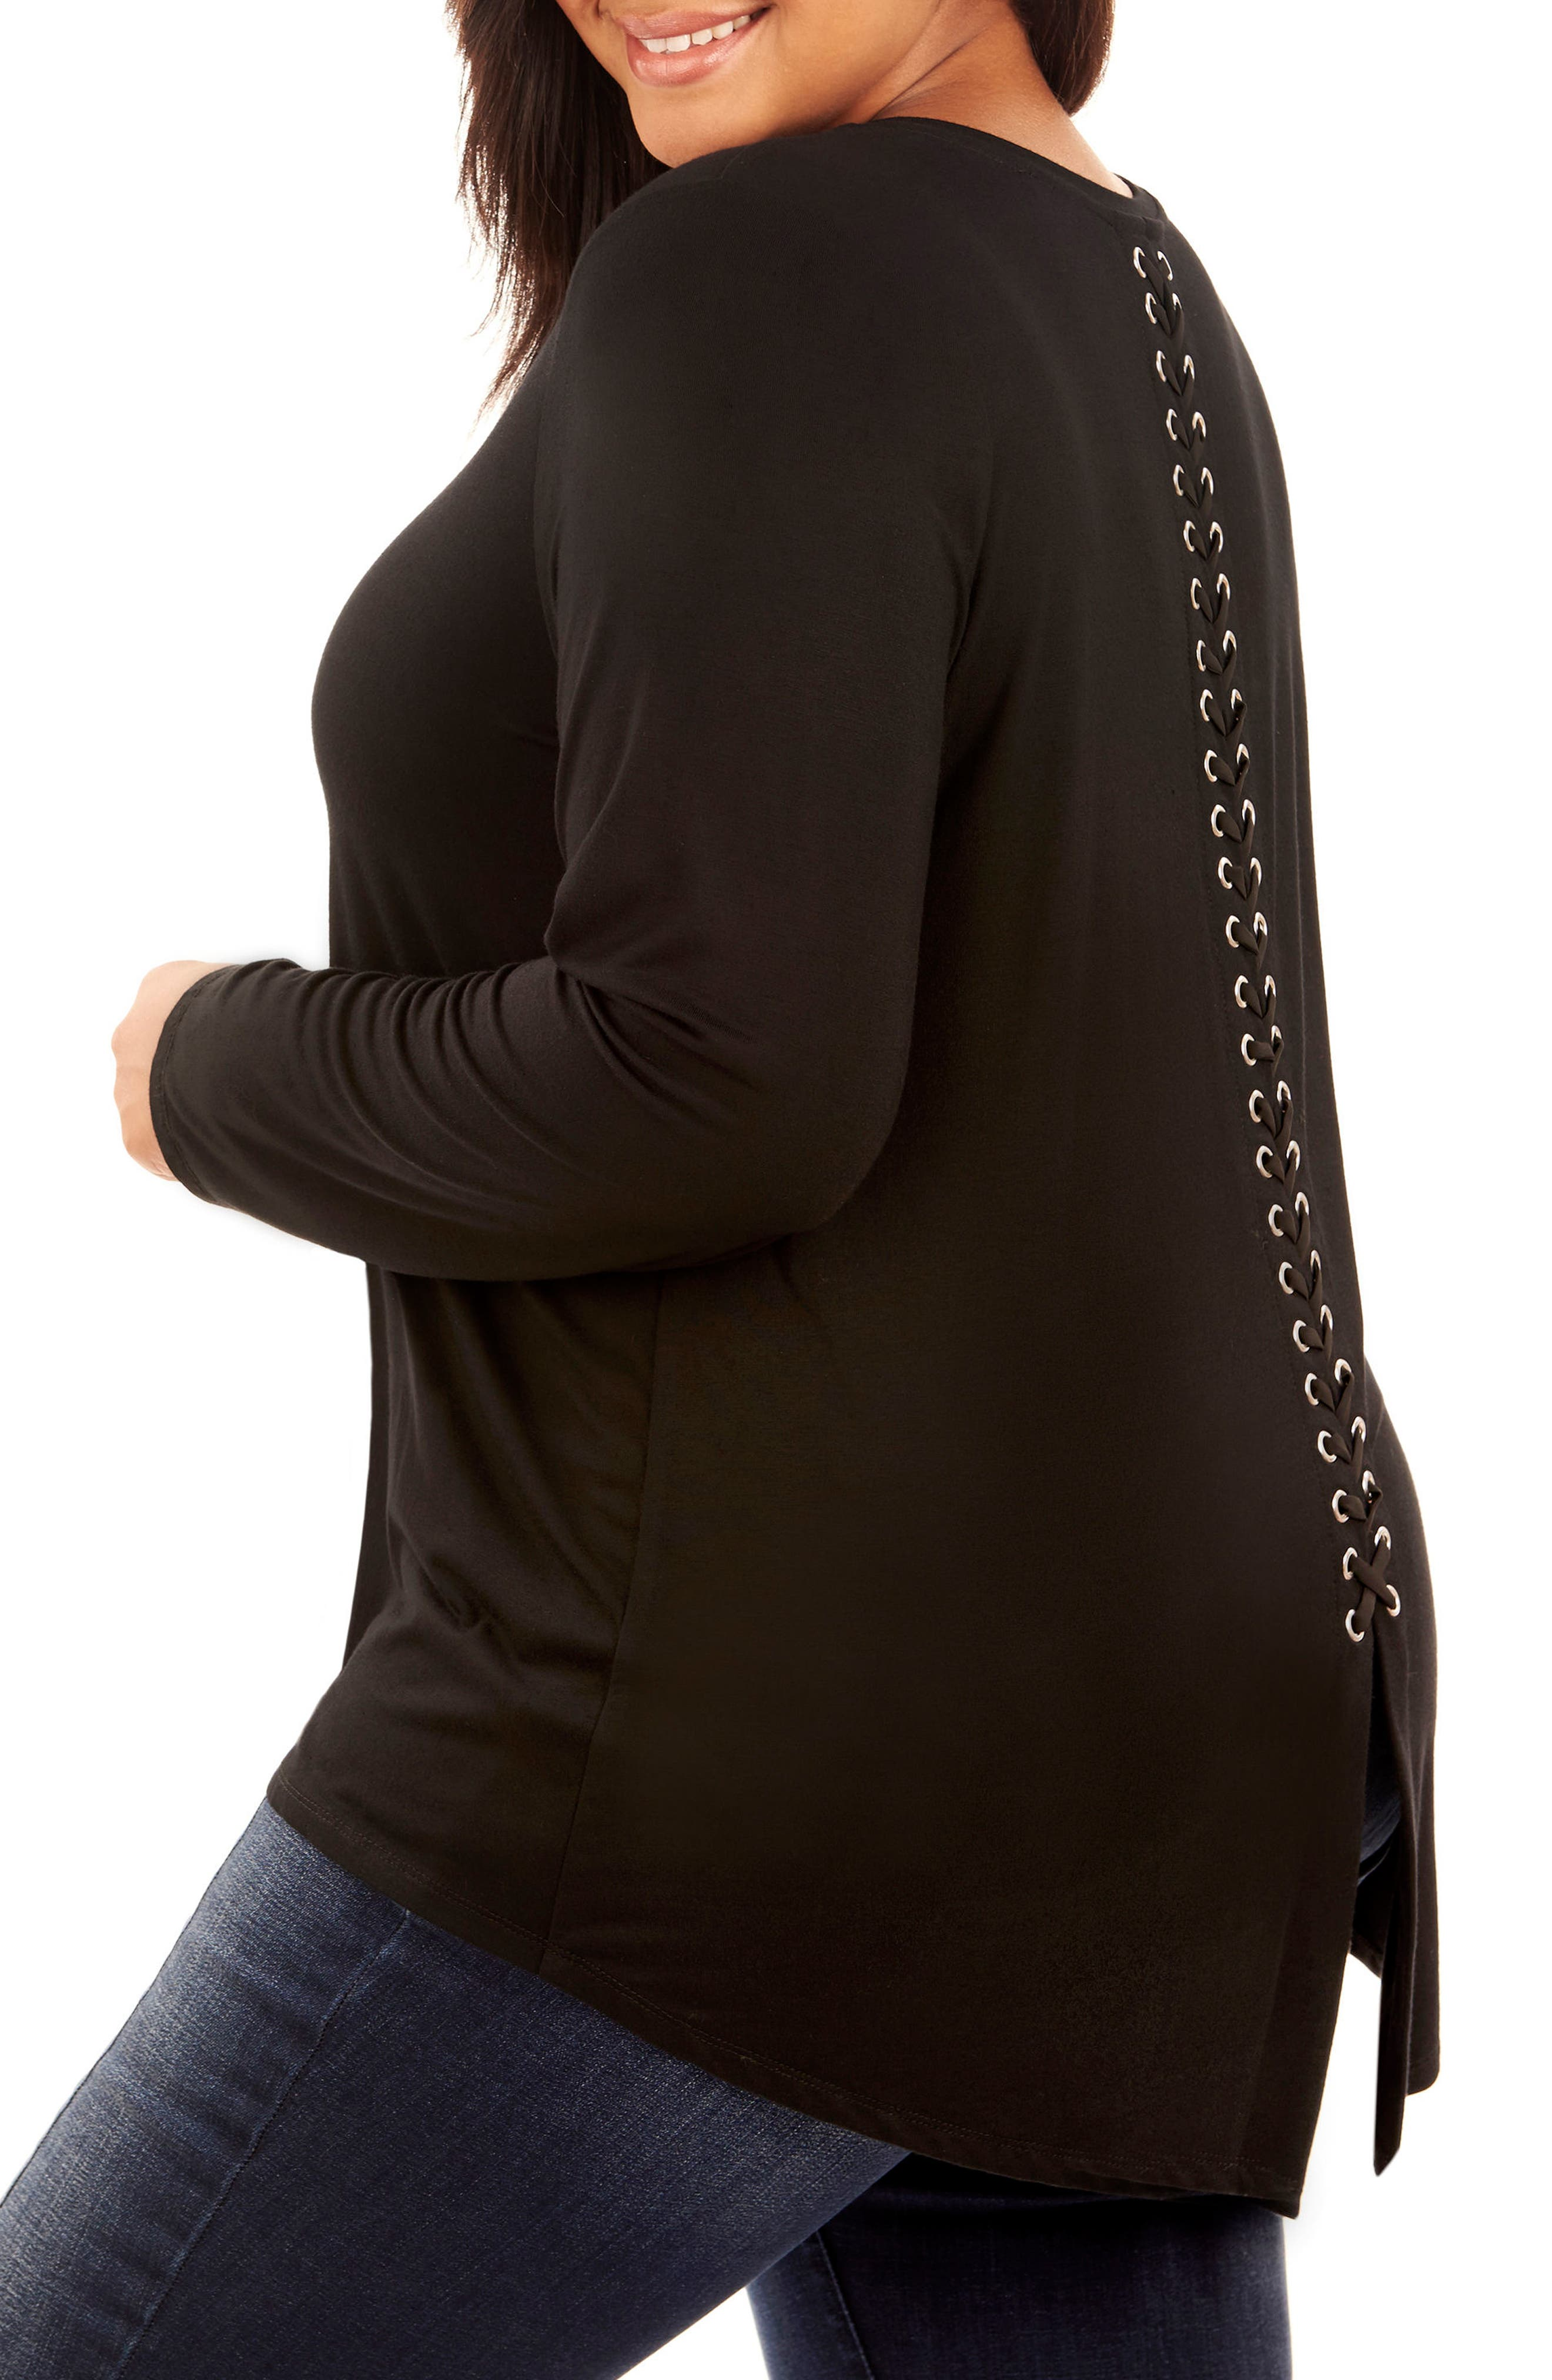 Lace-Up Back Top,                             Alternate thumbnail 3, color,                             Black Beauty